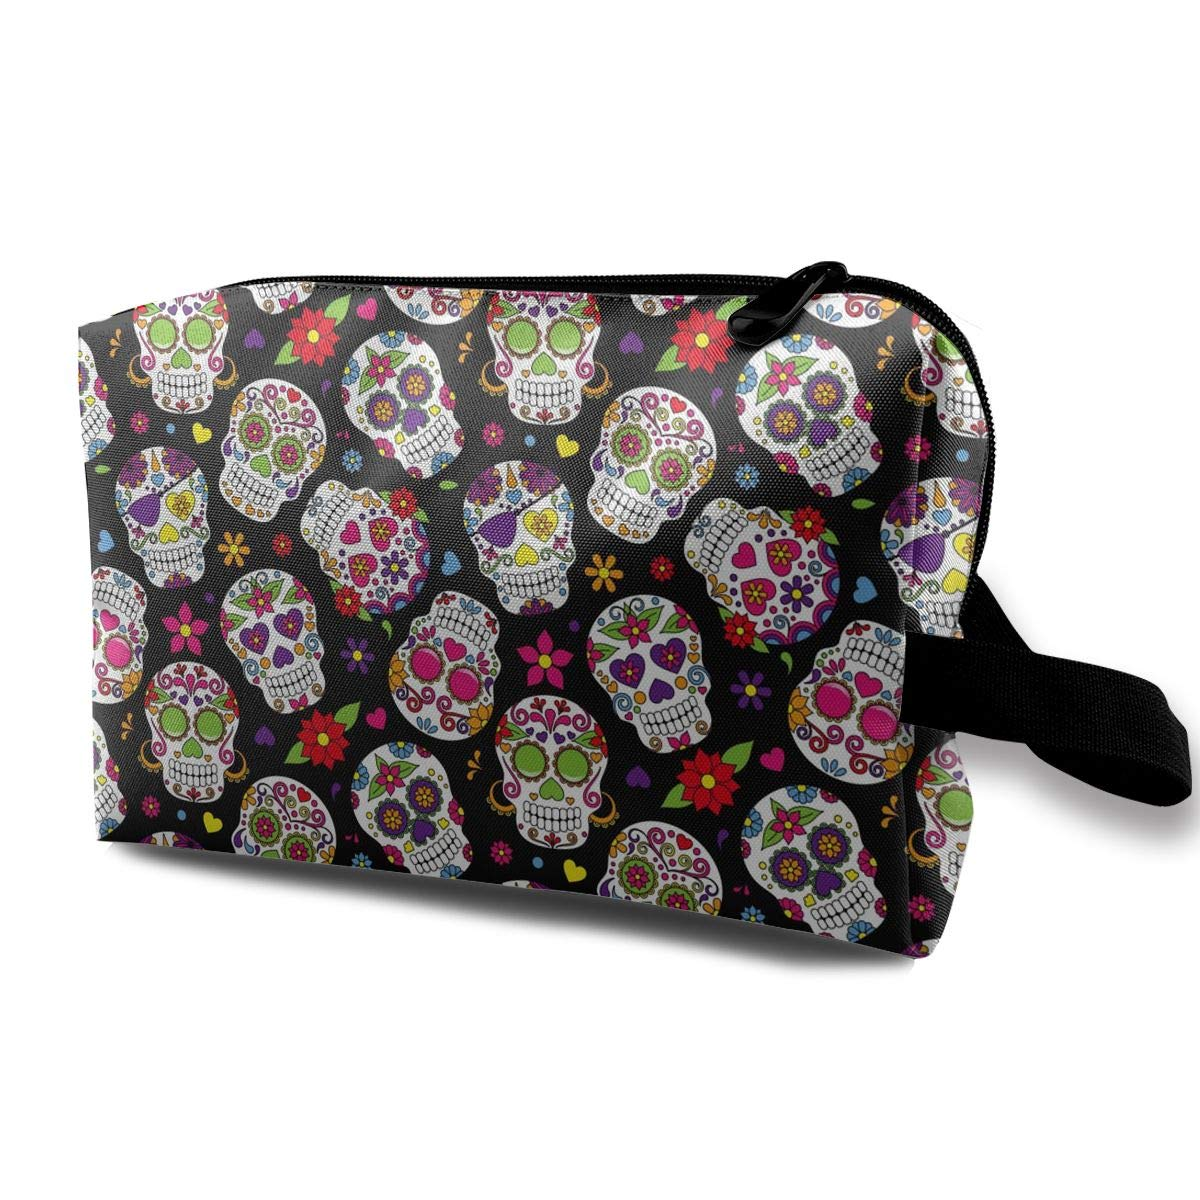 Sugar Skull Makeup Bag Cosmetic Pouch Travel Handbag Organizer Bag For Women